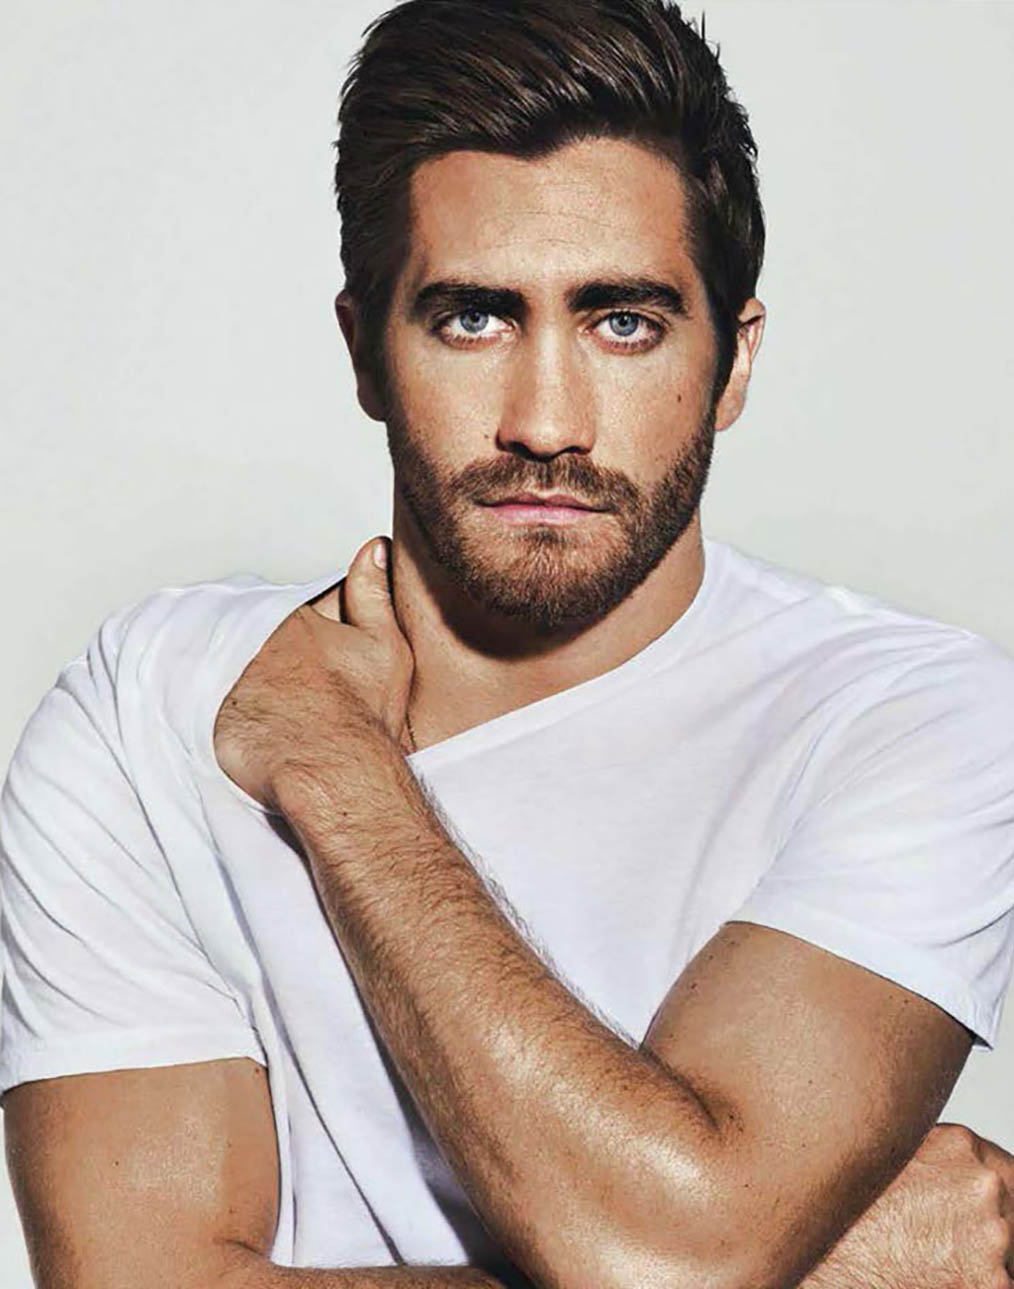 Jake Gyllenhaal Backgrounds, Compatible - PC, Mobile, Gadgets| 1014x1289 px